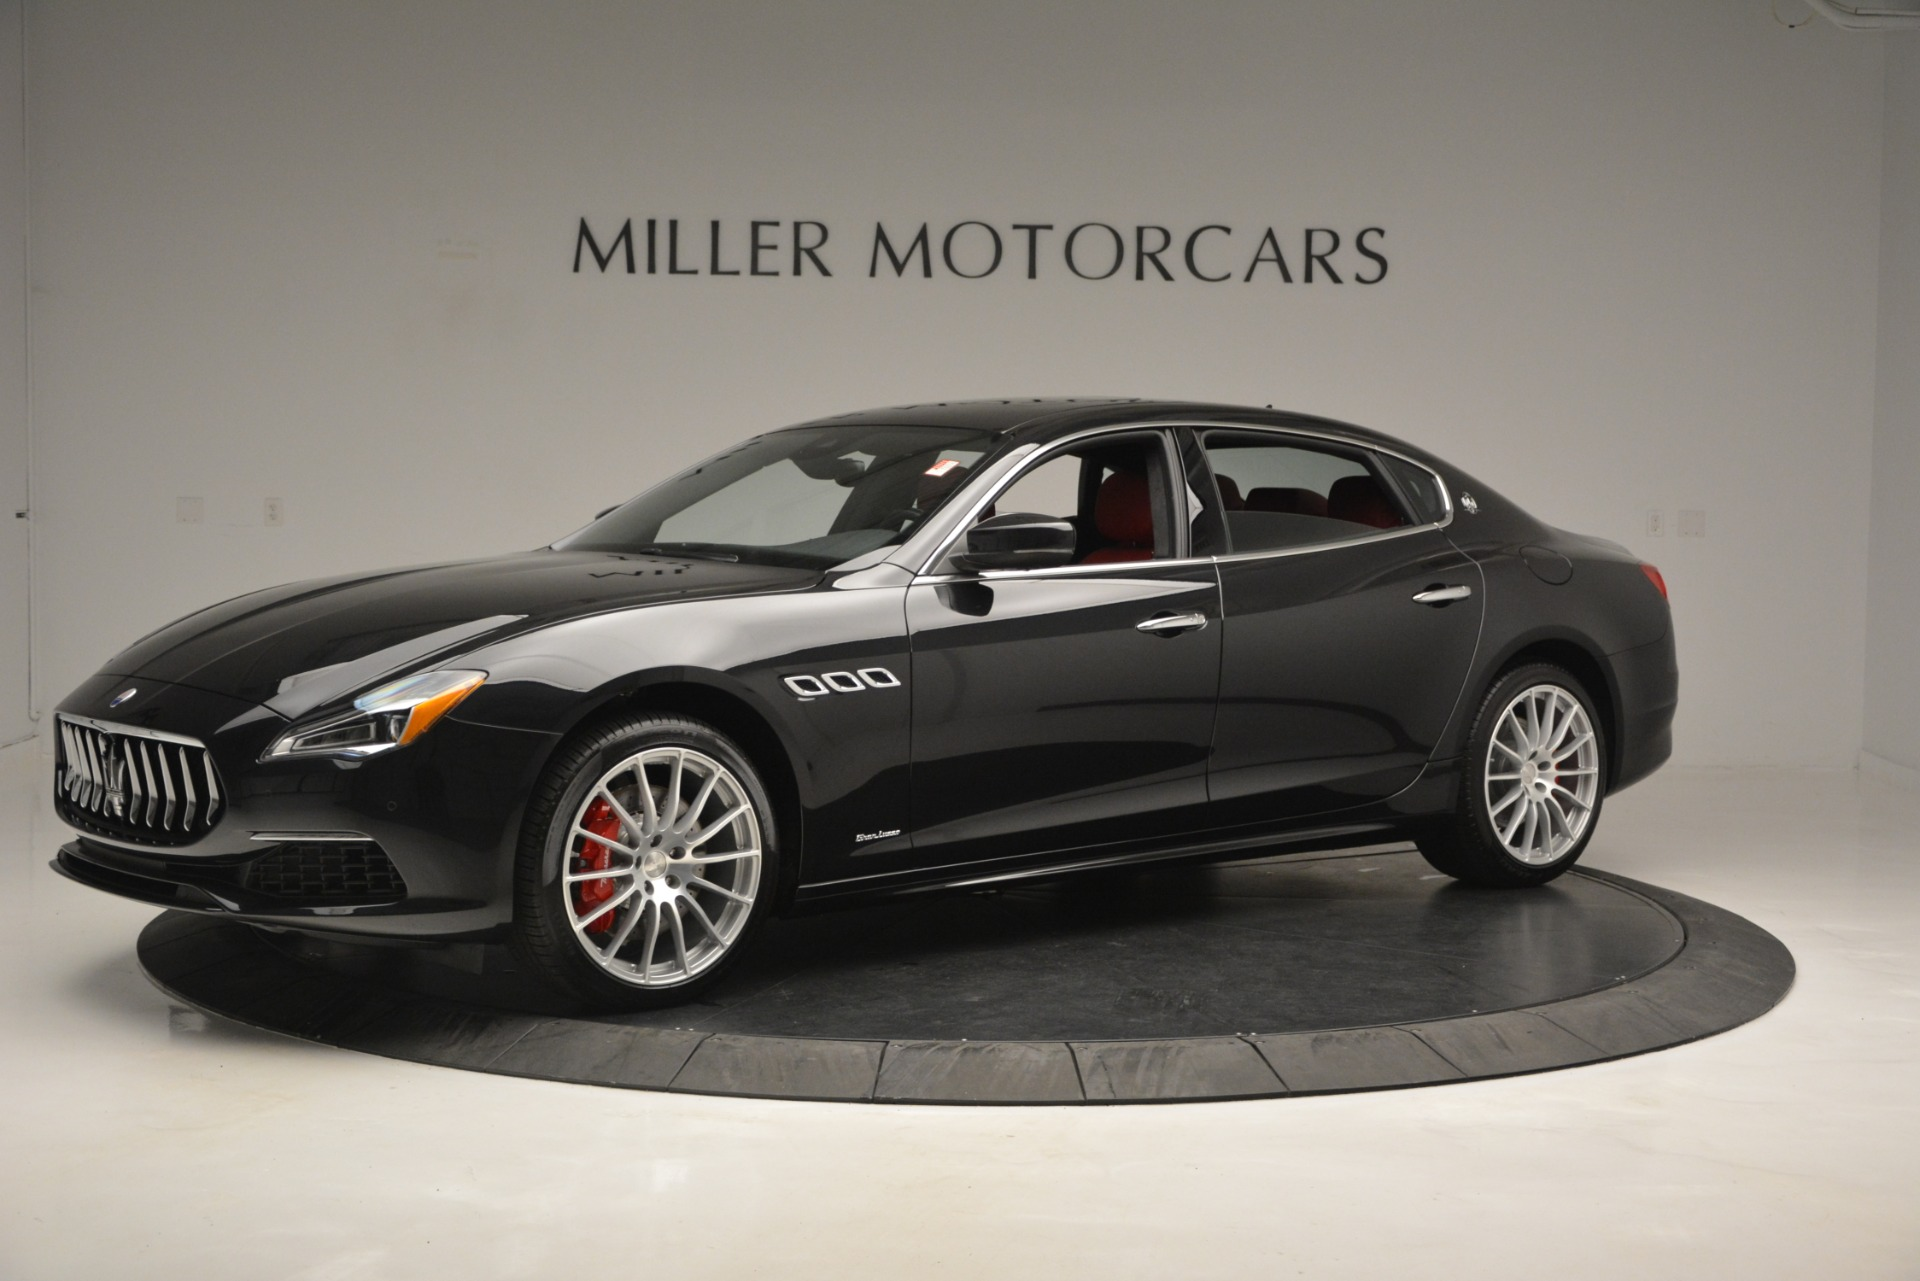 New 2019 Maserati Quattroporte S Q4 GranLusso For Sale In Greenwich, CT 2718_p2